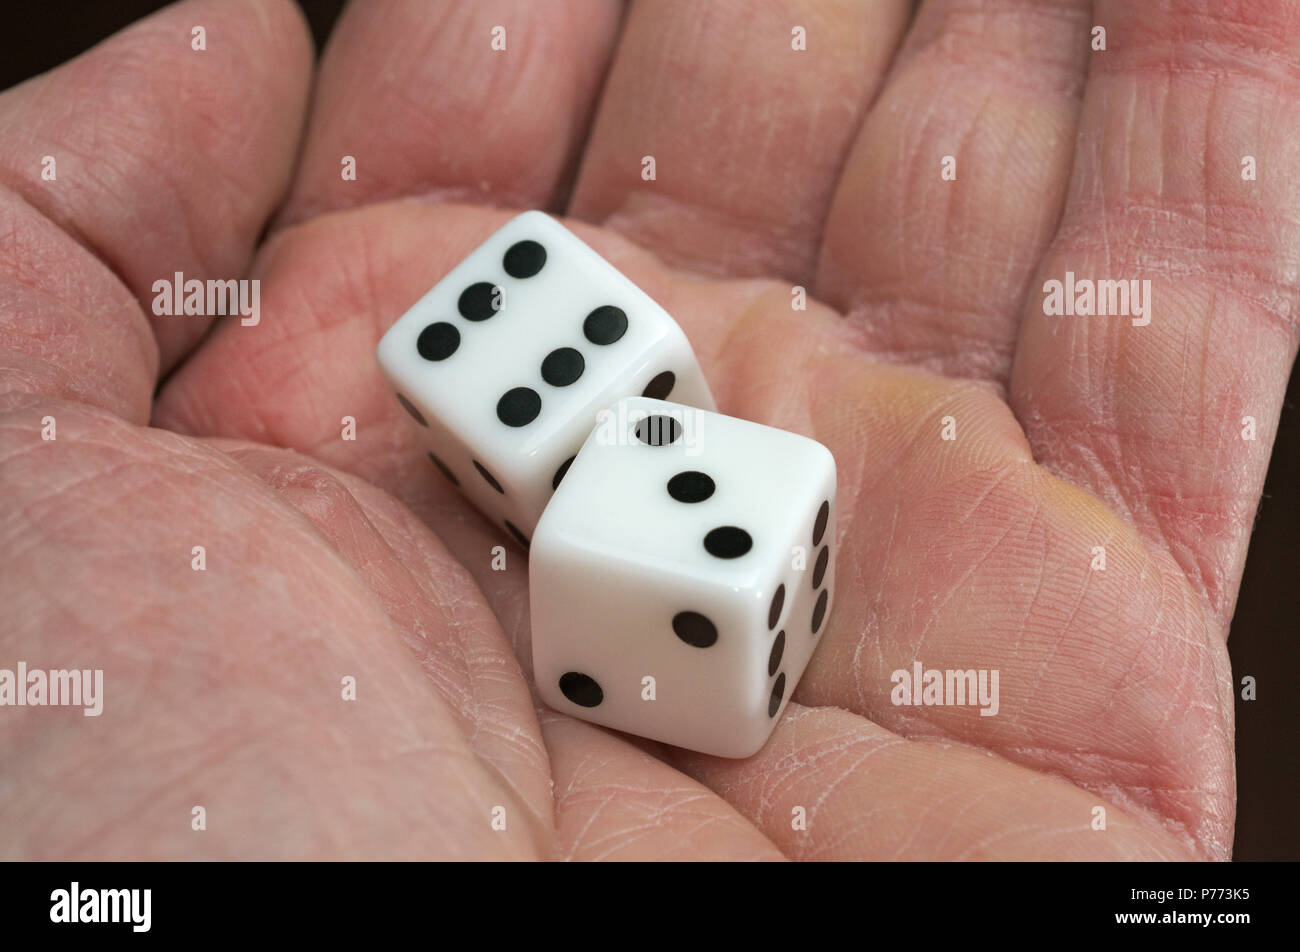 hand holding pair of dice - Stock Image